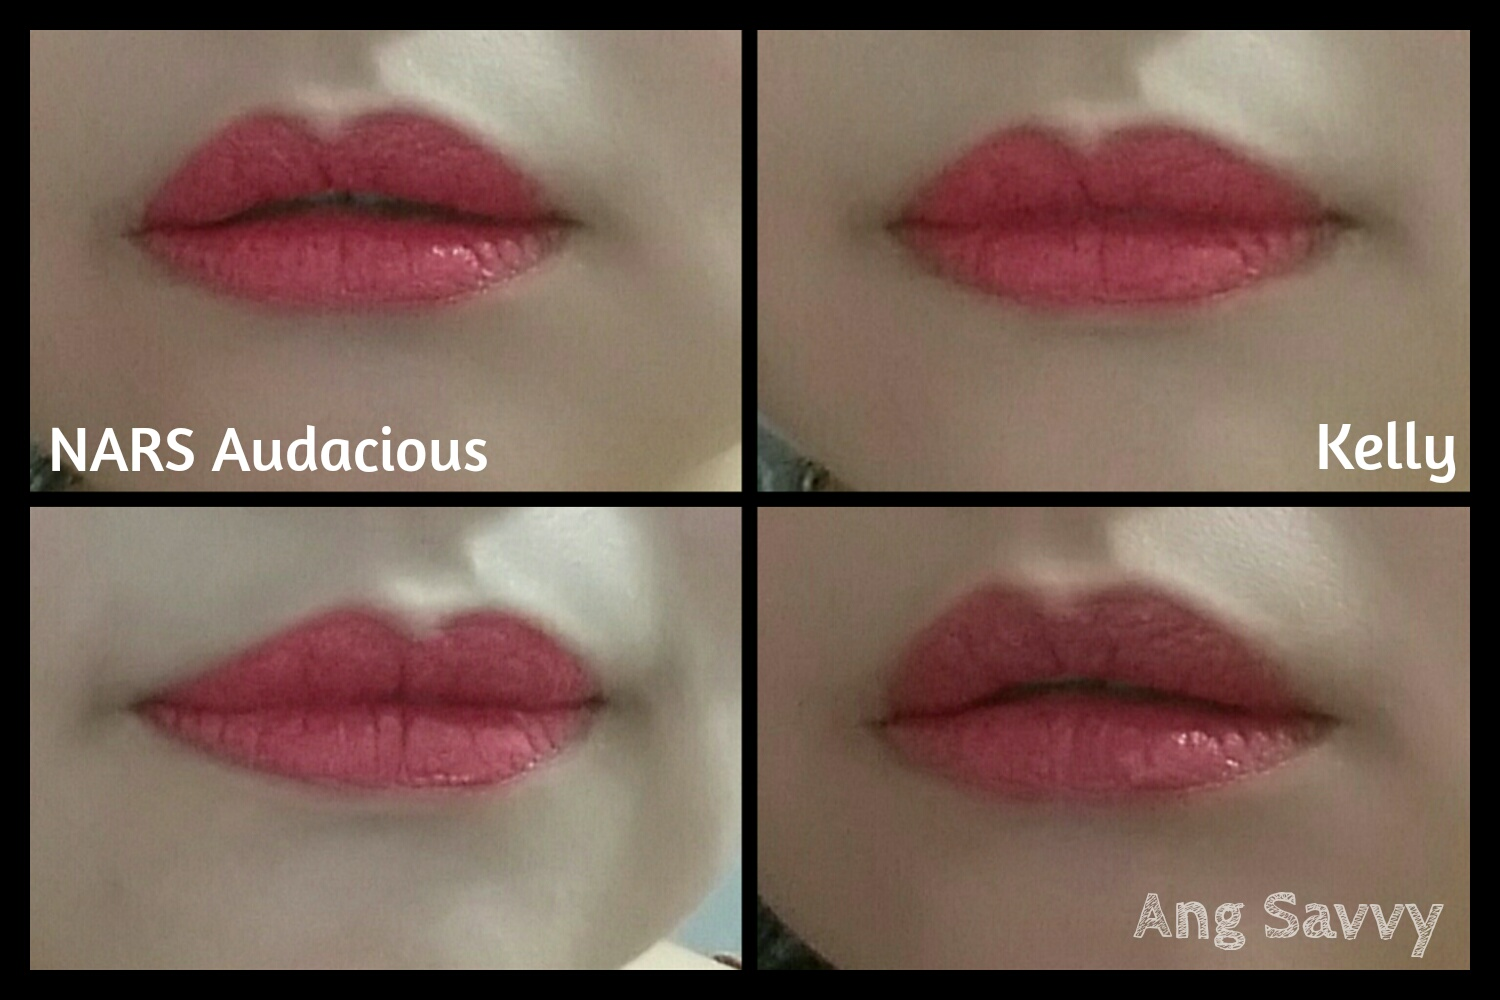 NARS Kelly Audacious Lipstick Swatches